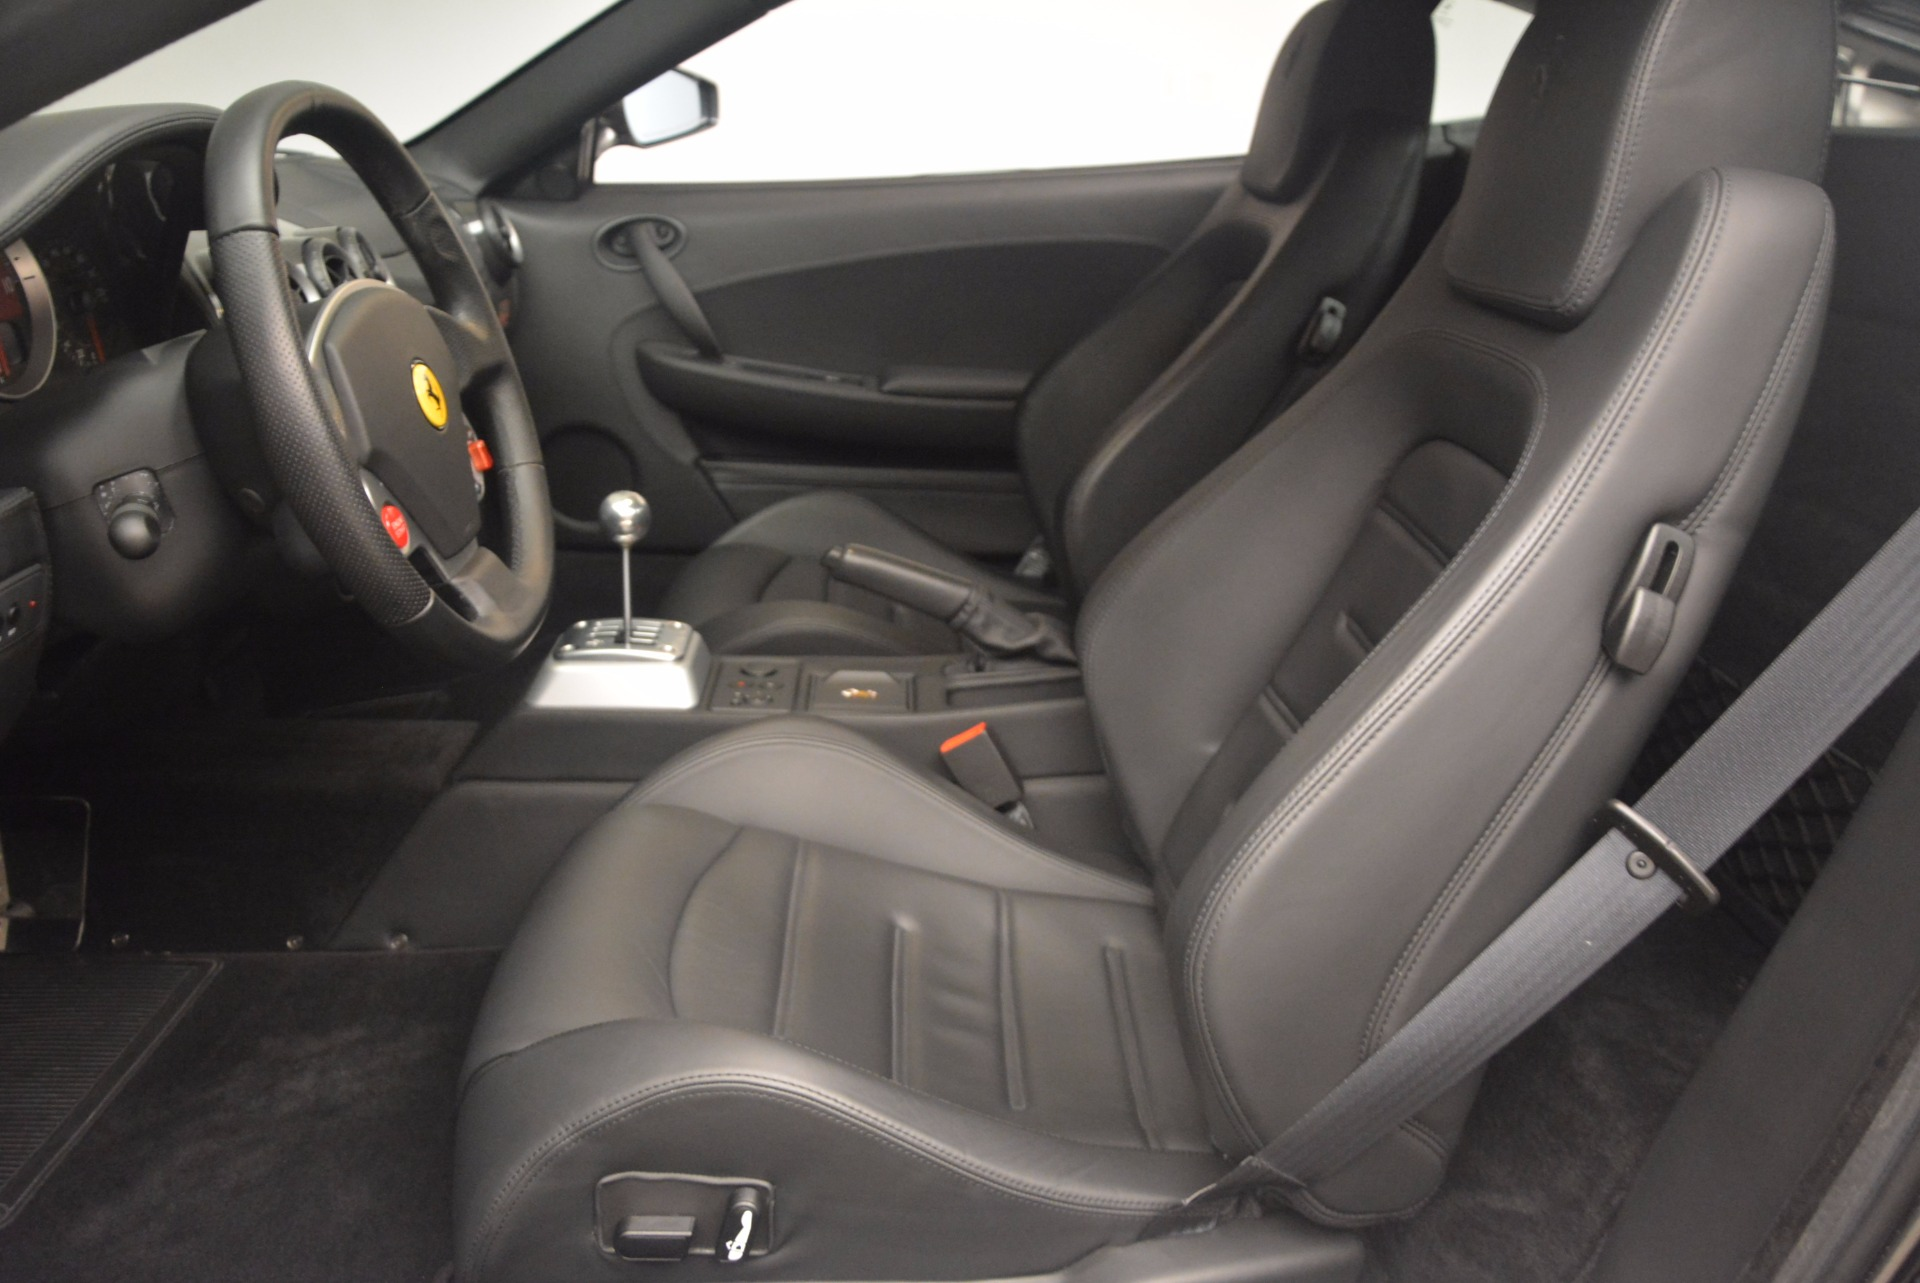 Used 2005 Ferrari F430 6-Speed Manual For Sale In Greenwich, CT 1286_p14